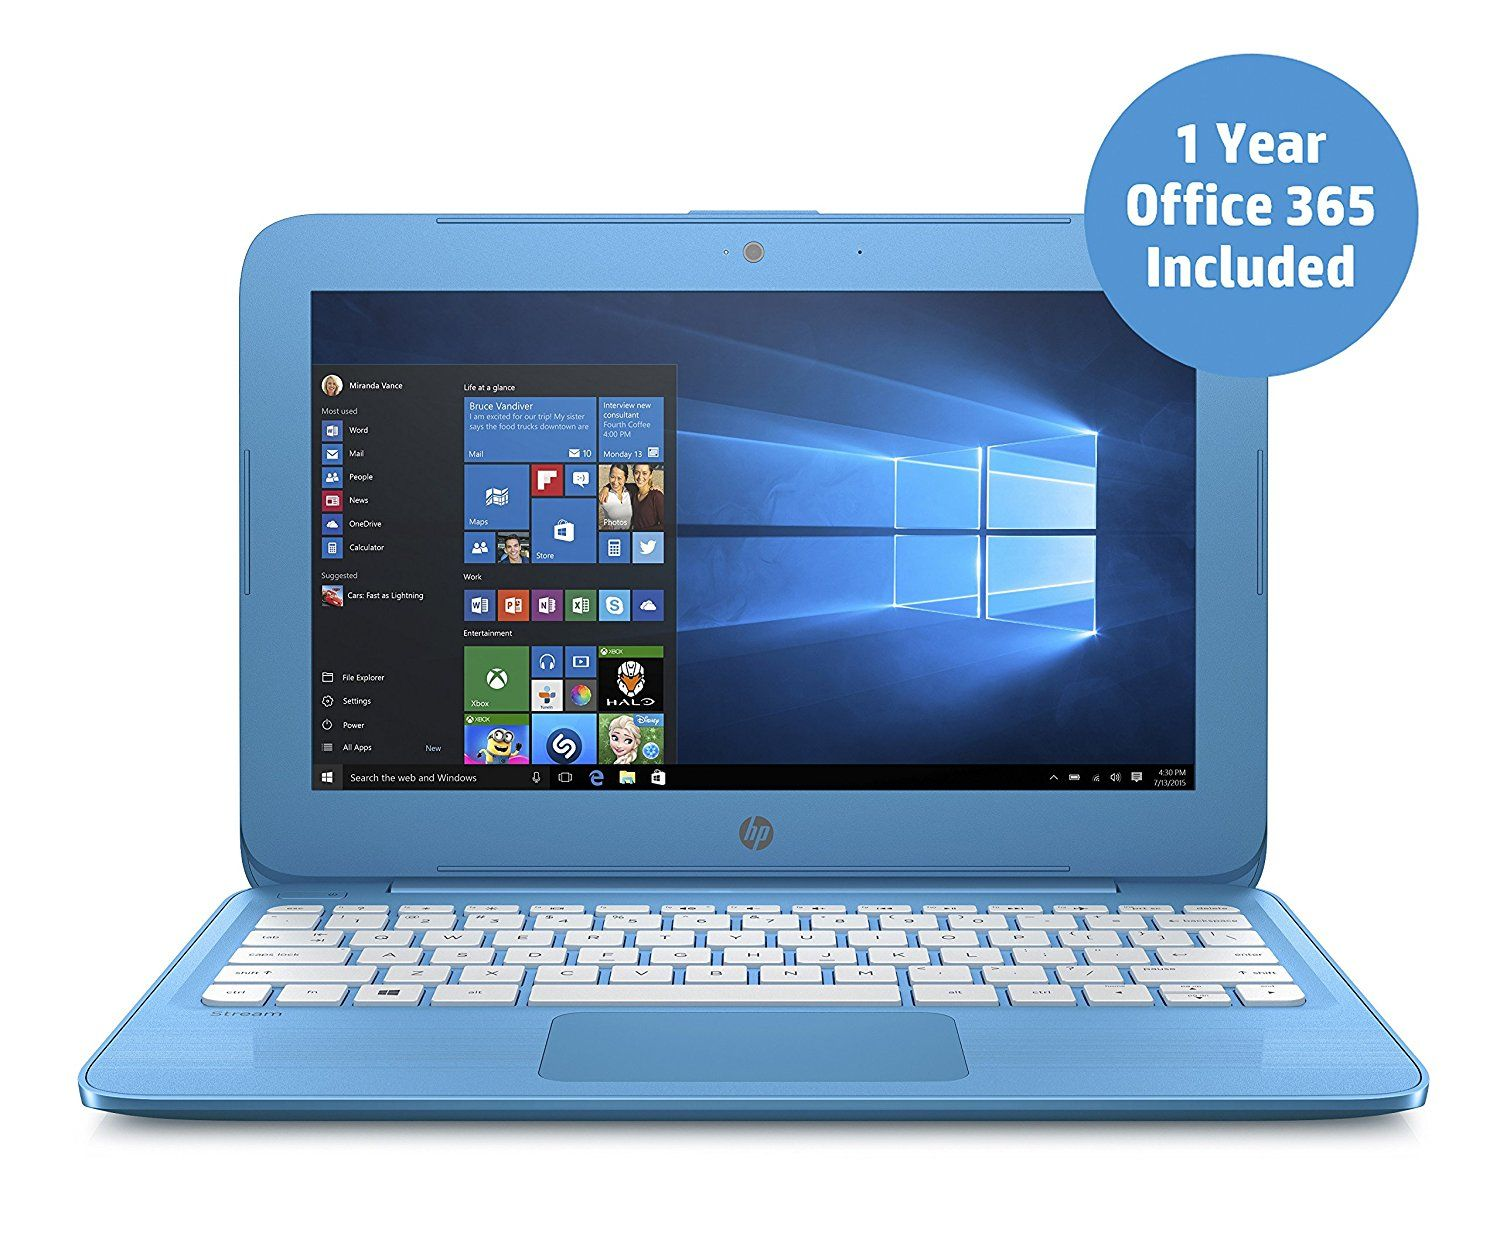 HP Stream 11y000na 11.6inch Laptop (Aqua Blue) (Intel